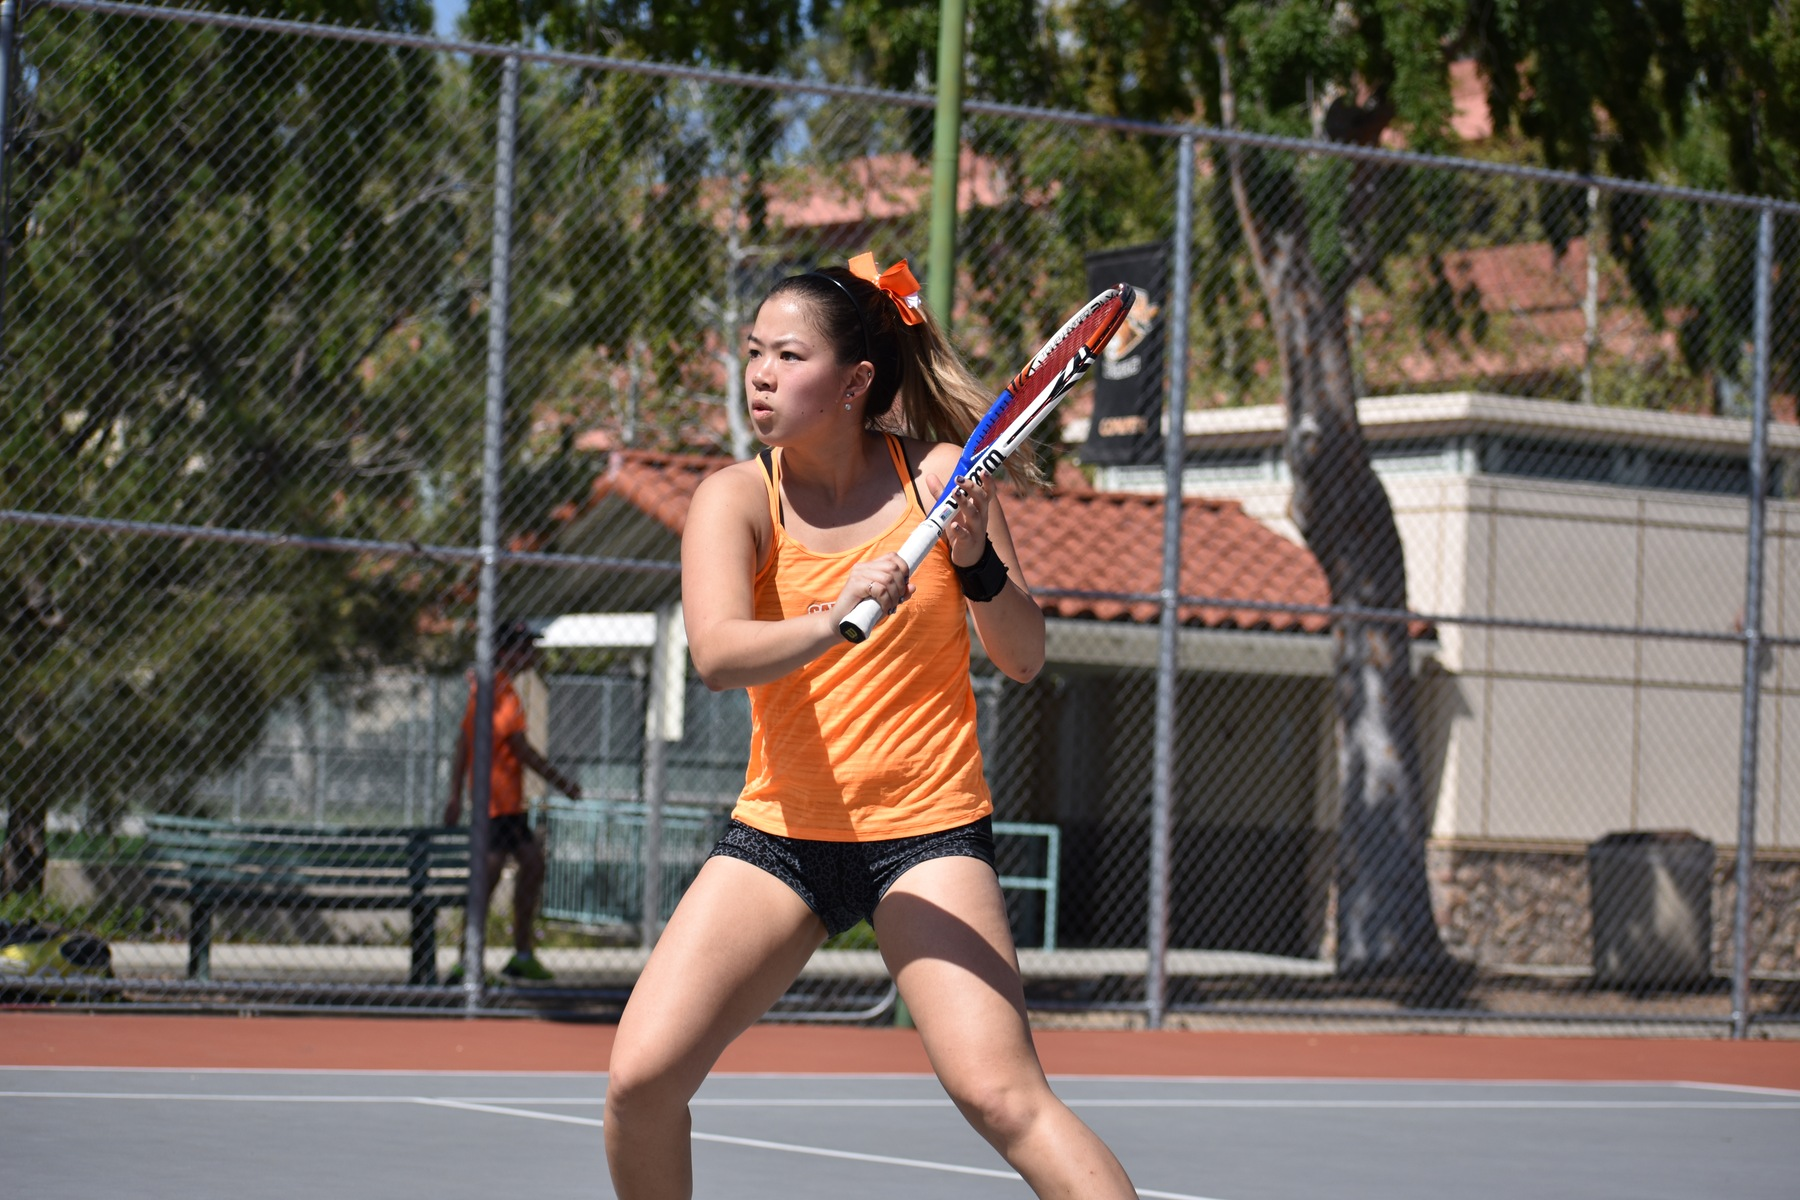 Cai Digs Deep for Singles Win Against Sagehens